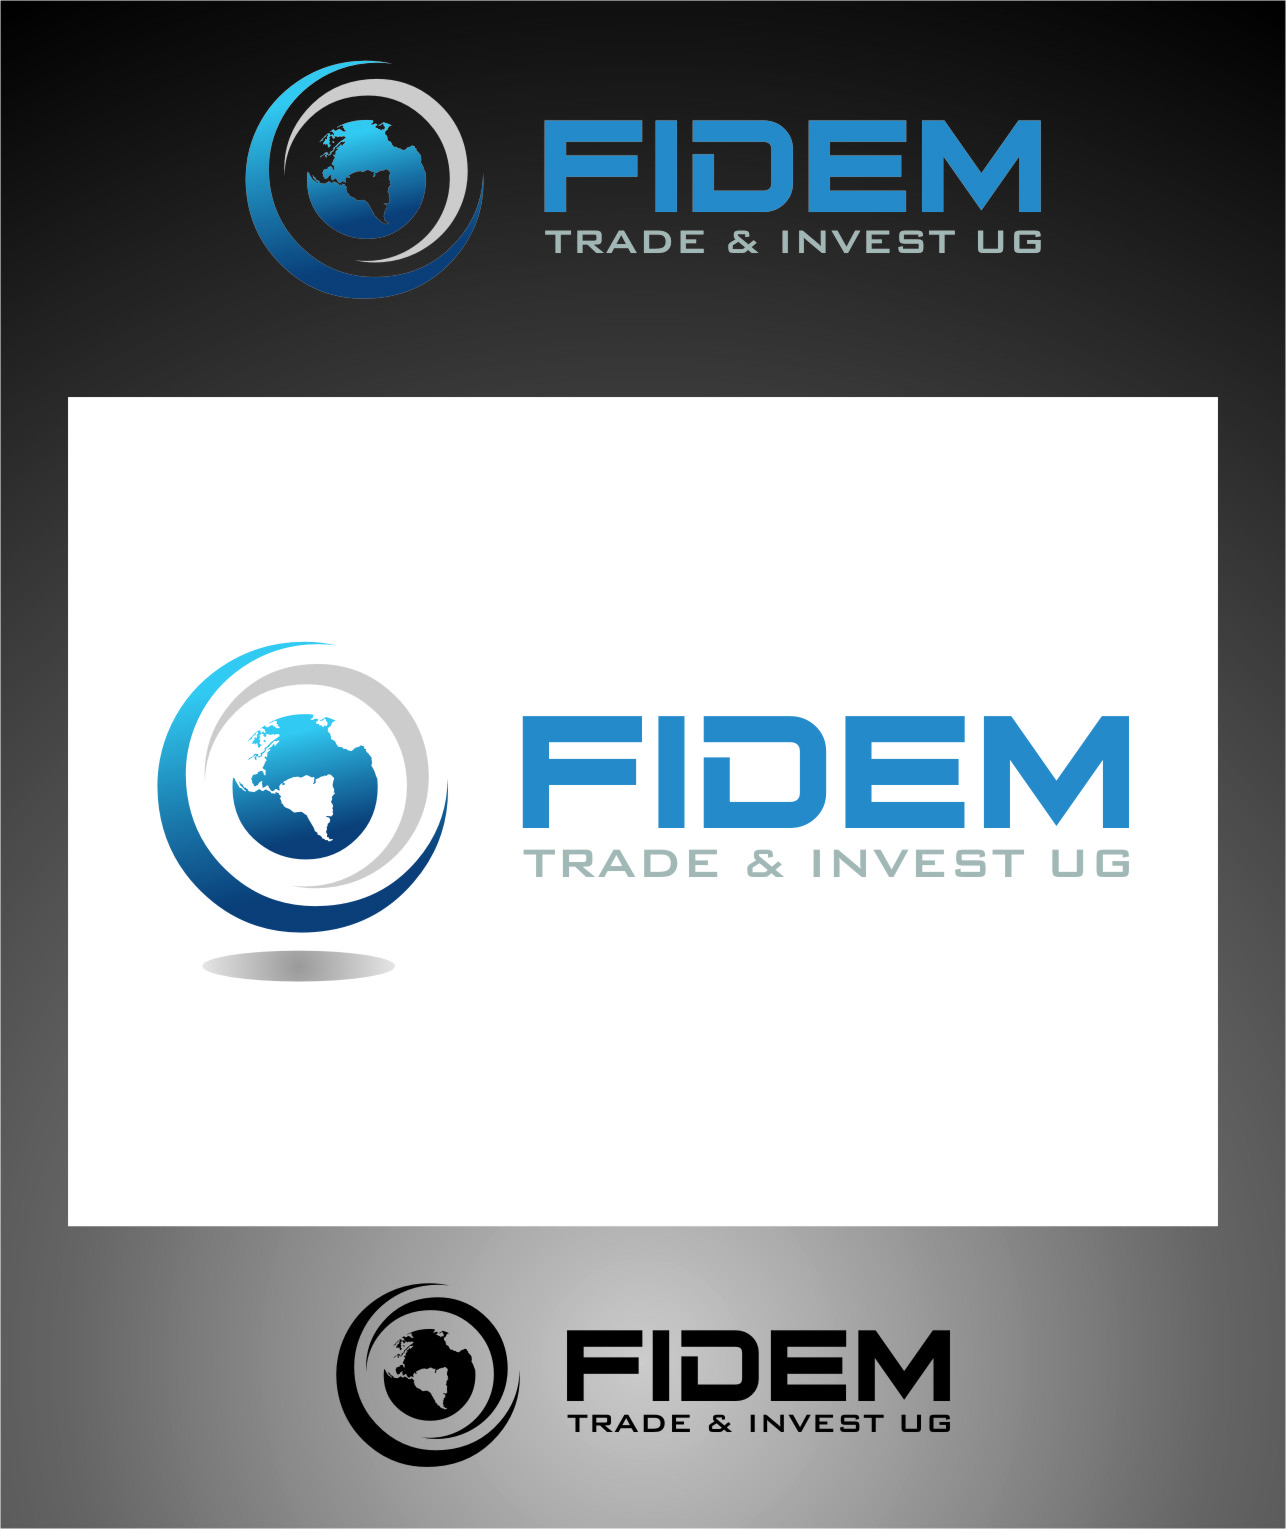 Logo Design by RasYa Muhammad Athaya - Entry No. 426 in the Logo Design Contest Professional Logo Design for FIDEM Trade & Invest UG.